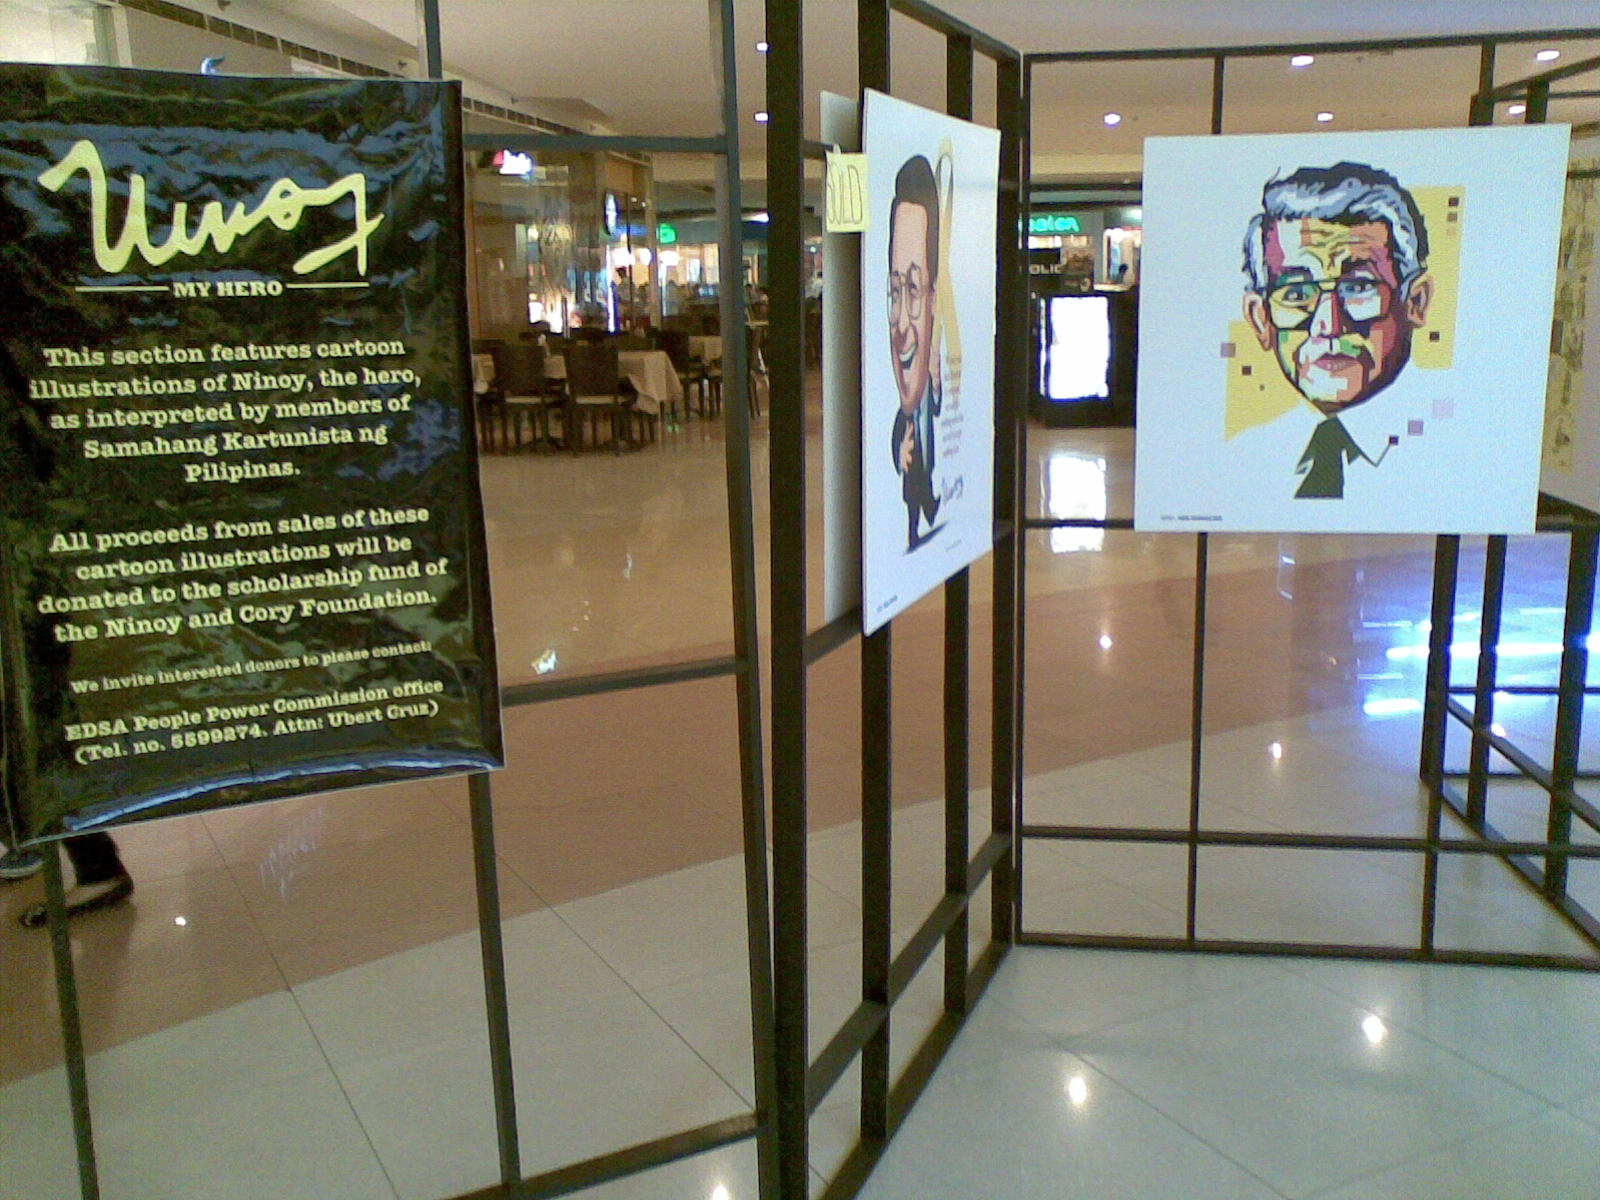 last journey of ninoy review Today, august 21, 2014, the aquino center and museum will have a free film showing of the last journey of ninoy at the center's audio visual room  gadget review.